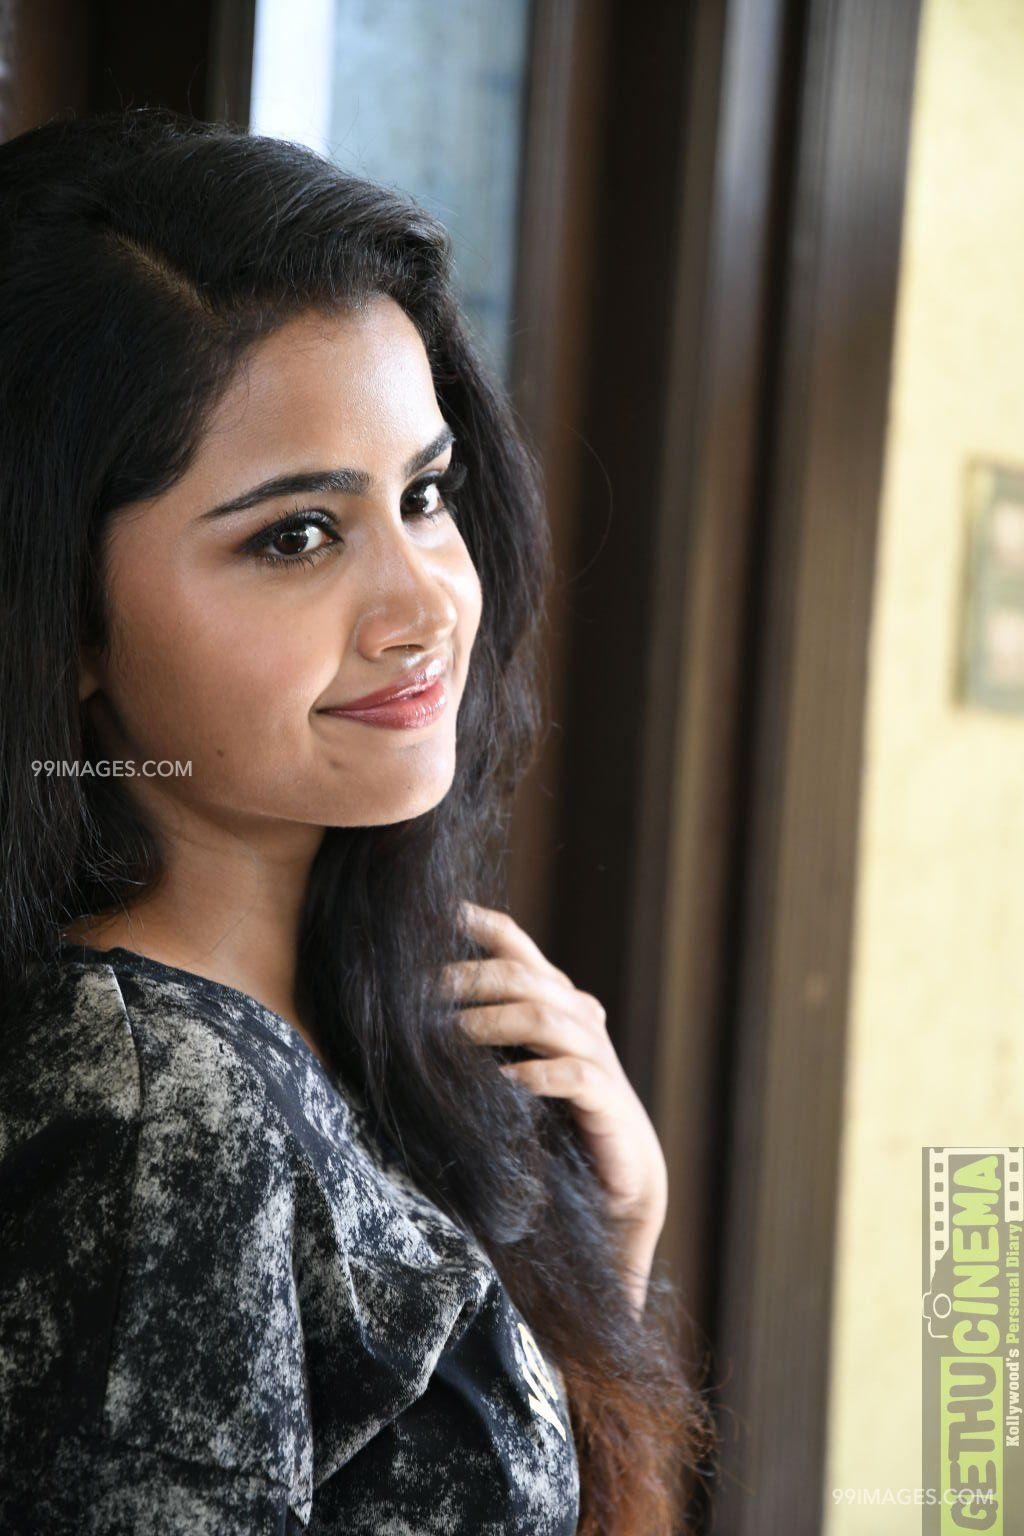 Anupama Parameswaran HD Wallpapers (Desktop Background / Android / iPhone) (1080p, 4k) (81441) - Anupama Parameswaran